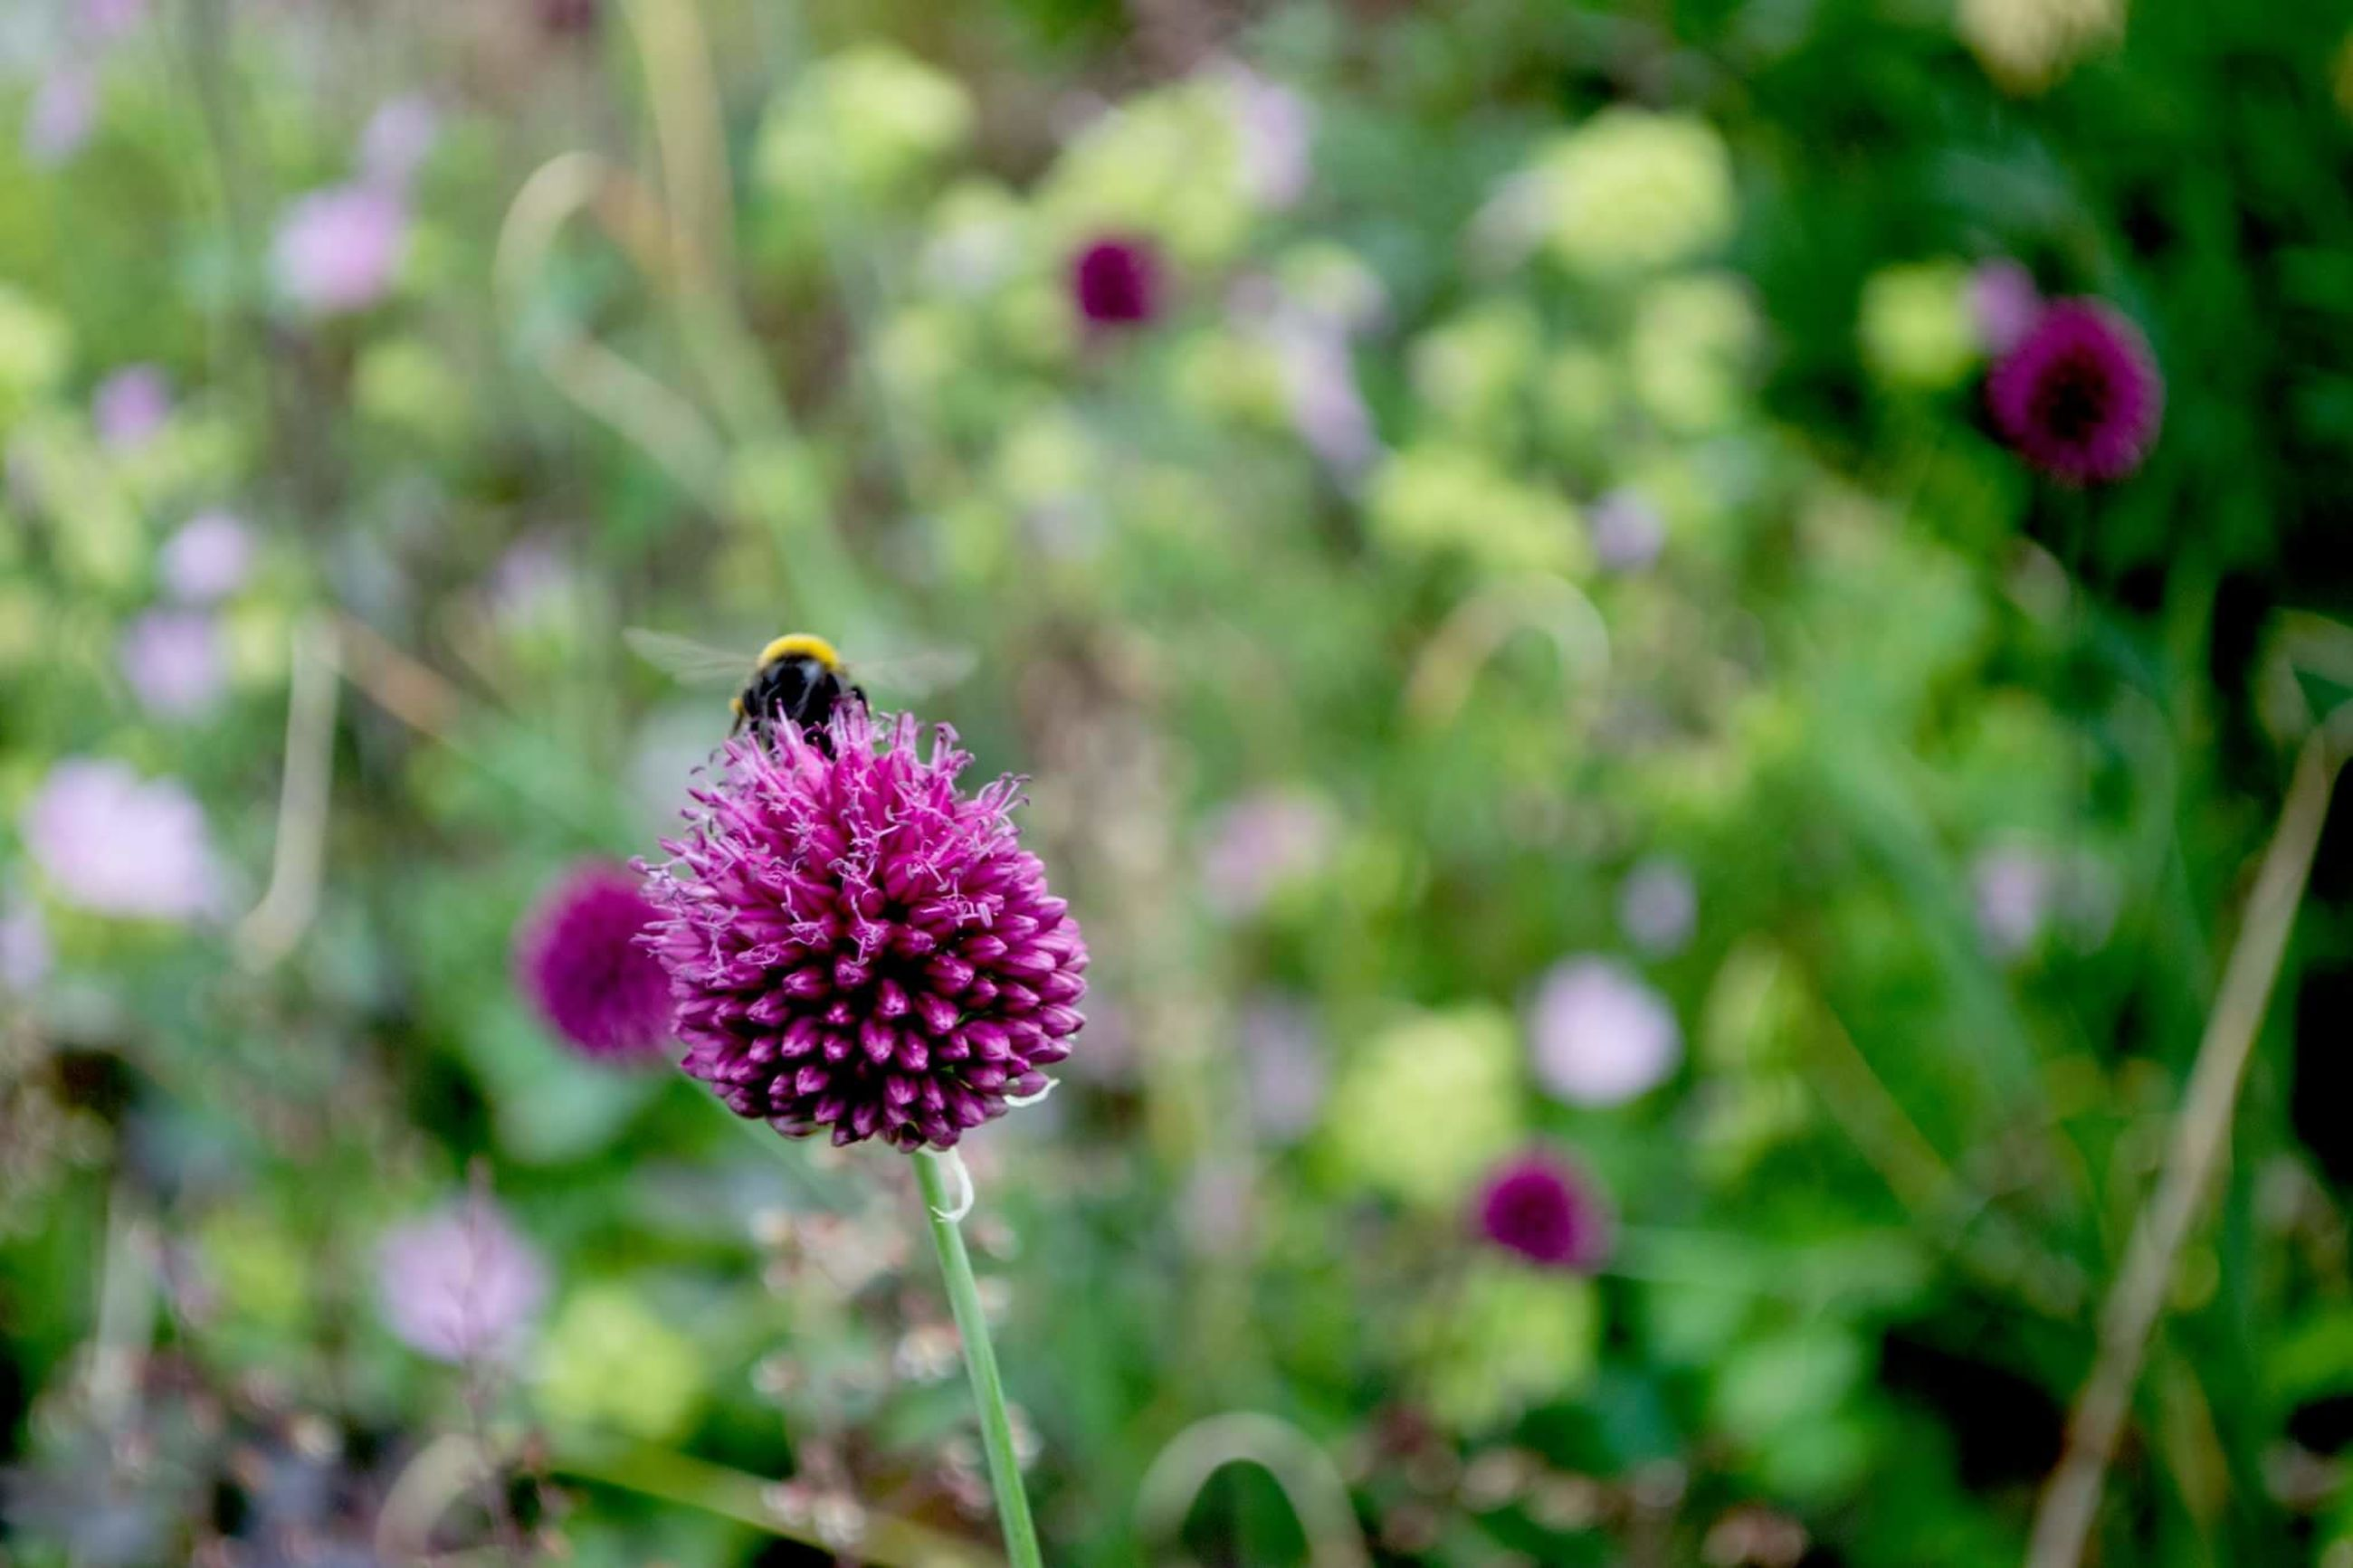 flower, insect, freshness, fragility, growth, focus on foreground, beauty in nature, plant, nature, close-up, petal, flower head, pollination, pink color, blooming, purple, selective focus, stem, day, outdoors, no people, in bloom, green color, botany